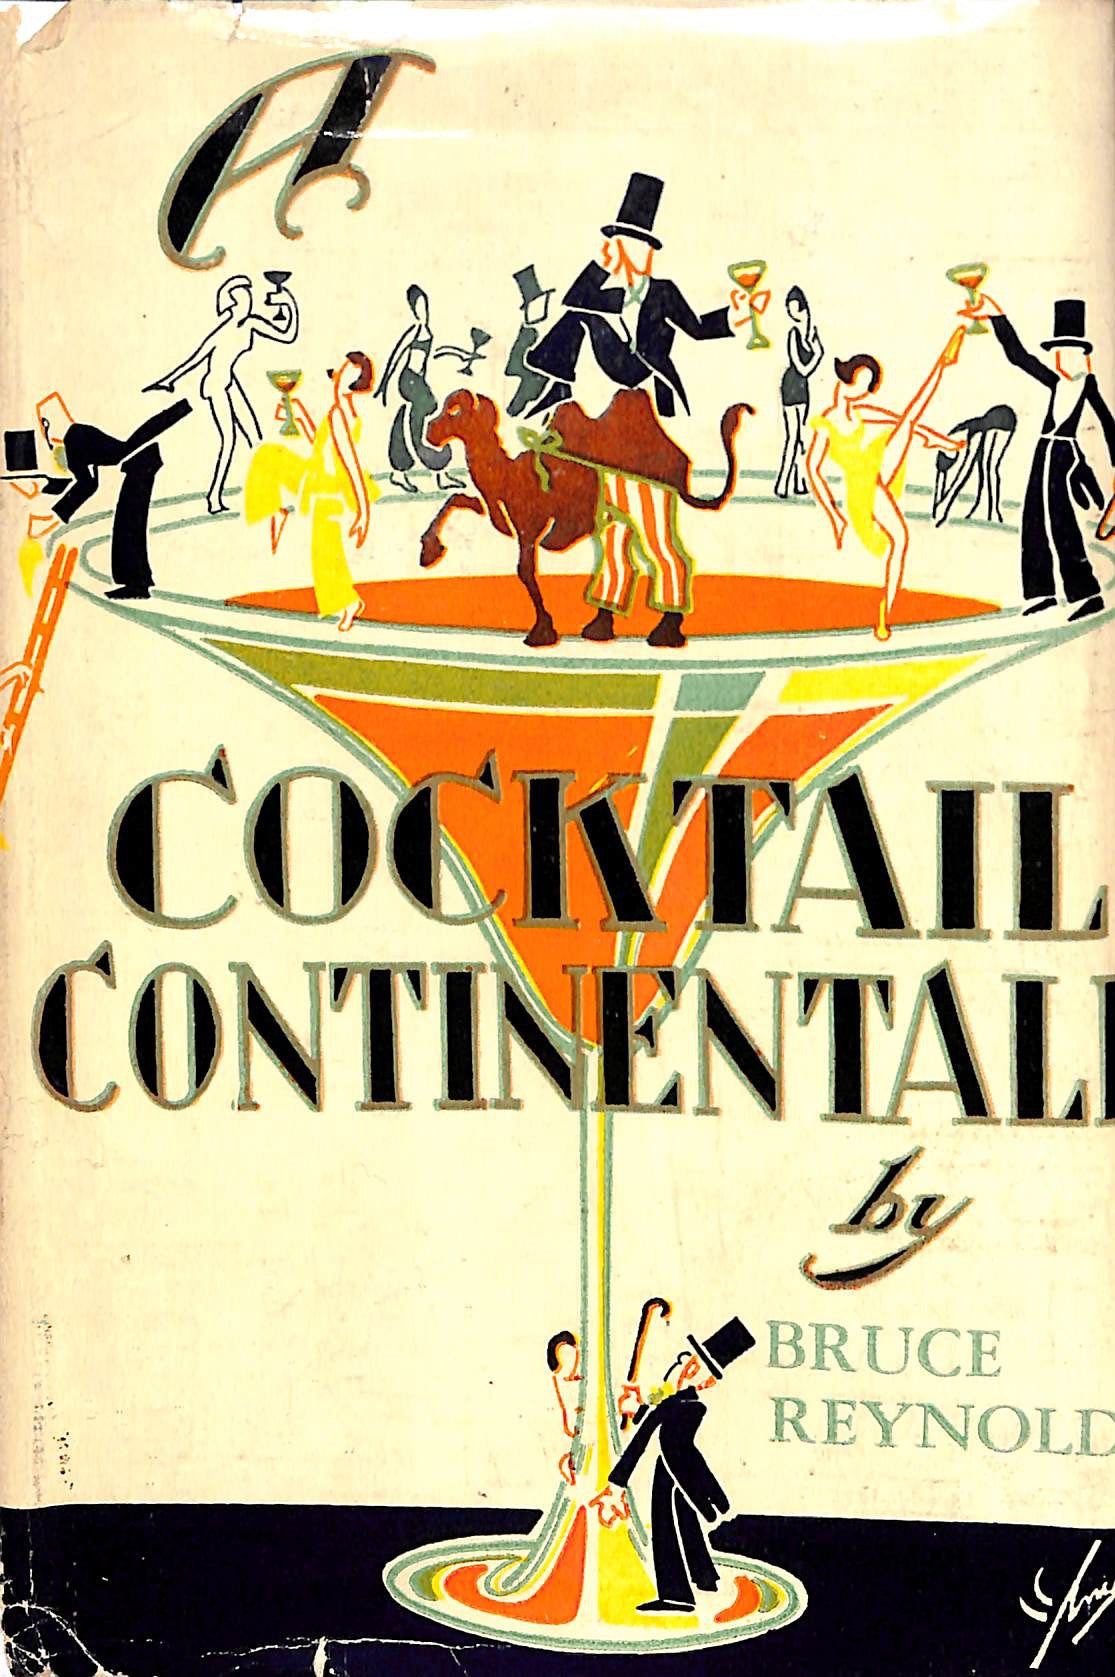 Cocktail Continentale by Bruce Reynolds